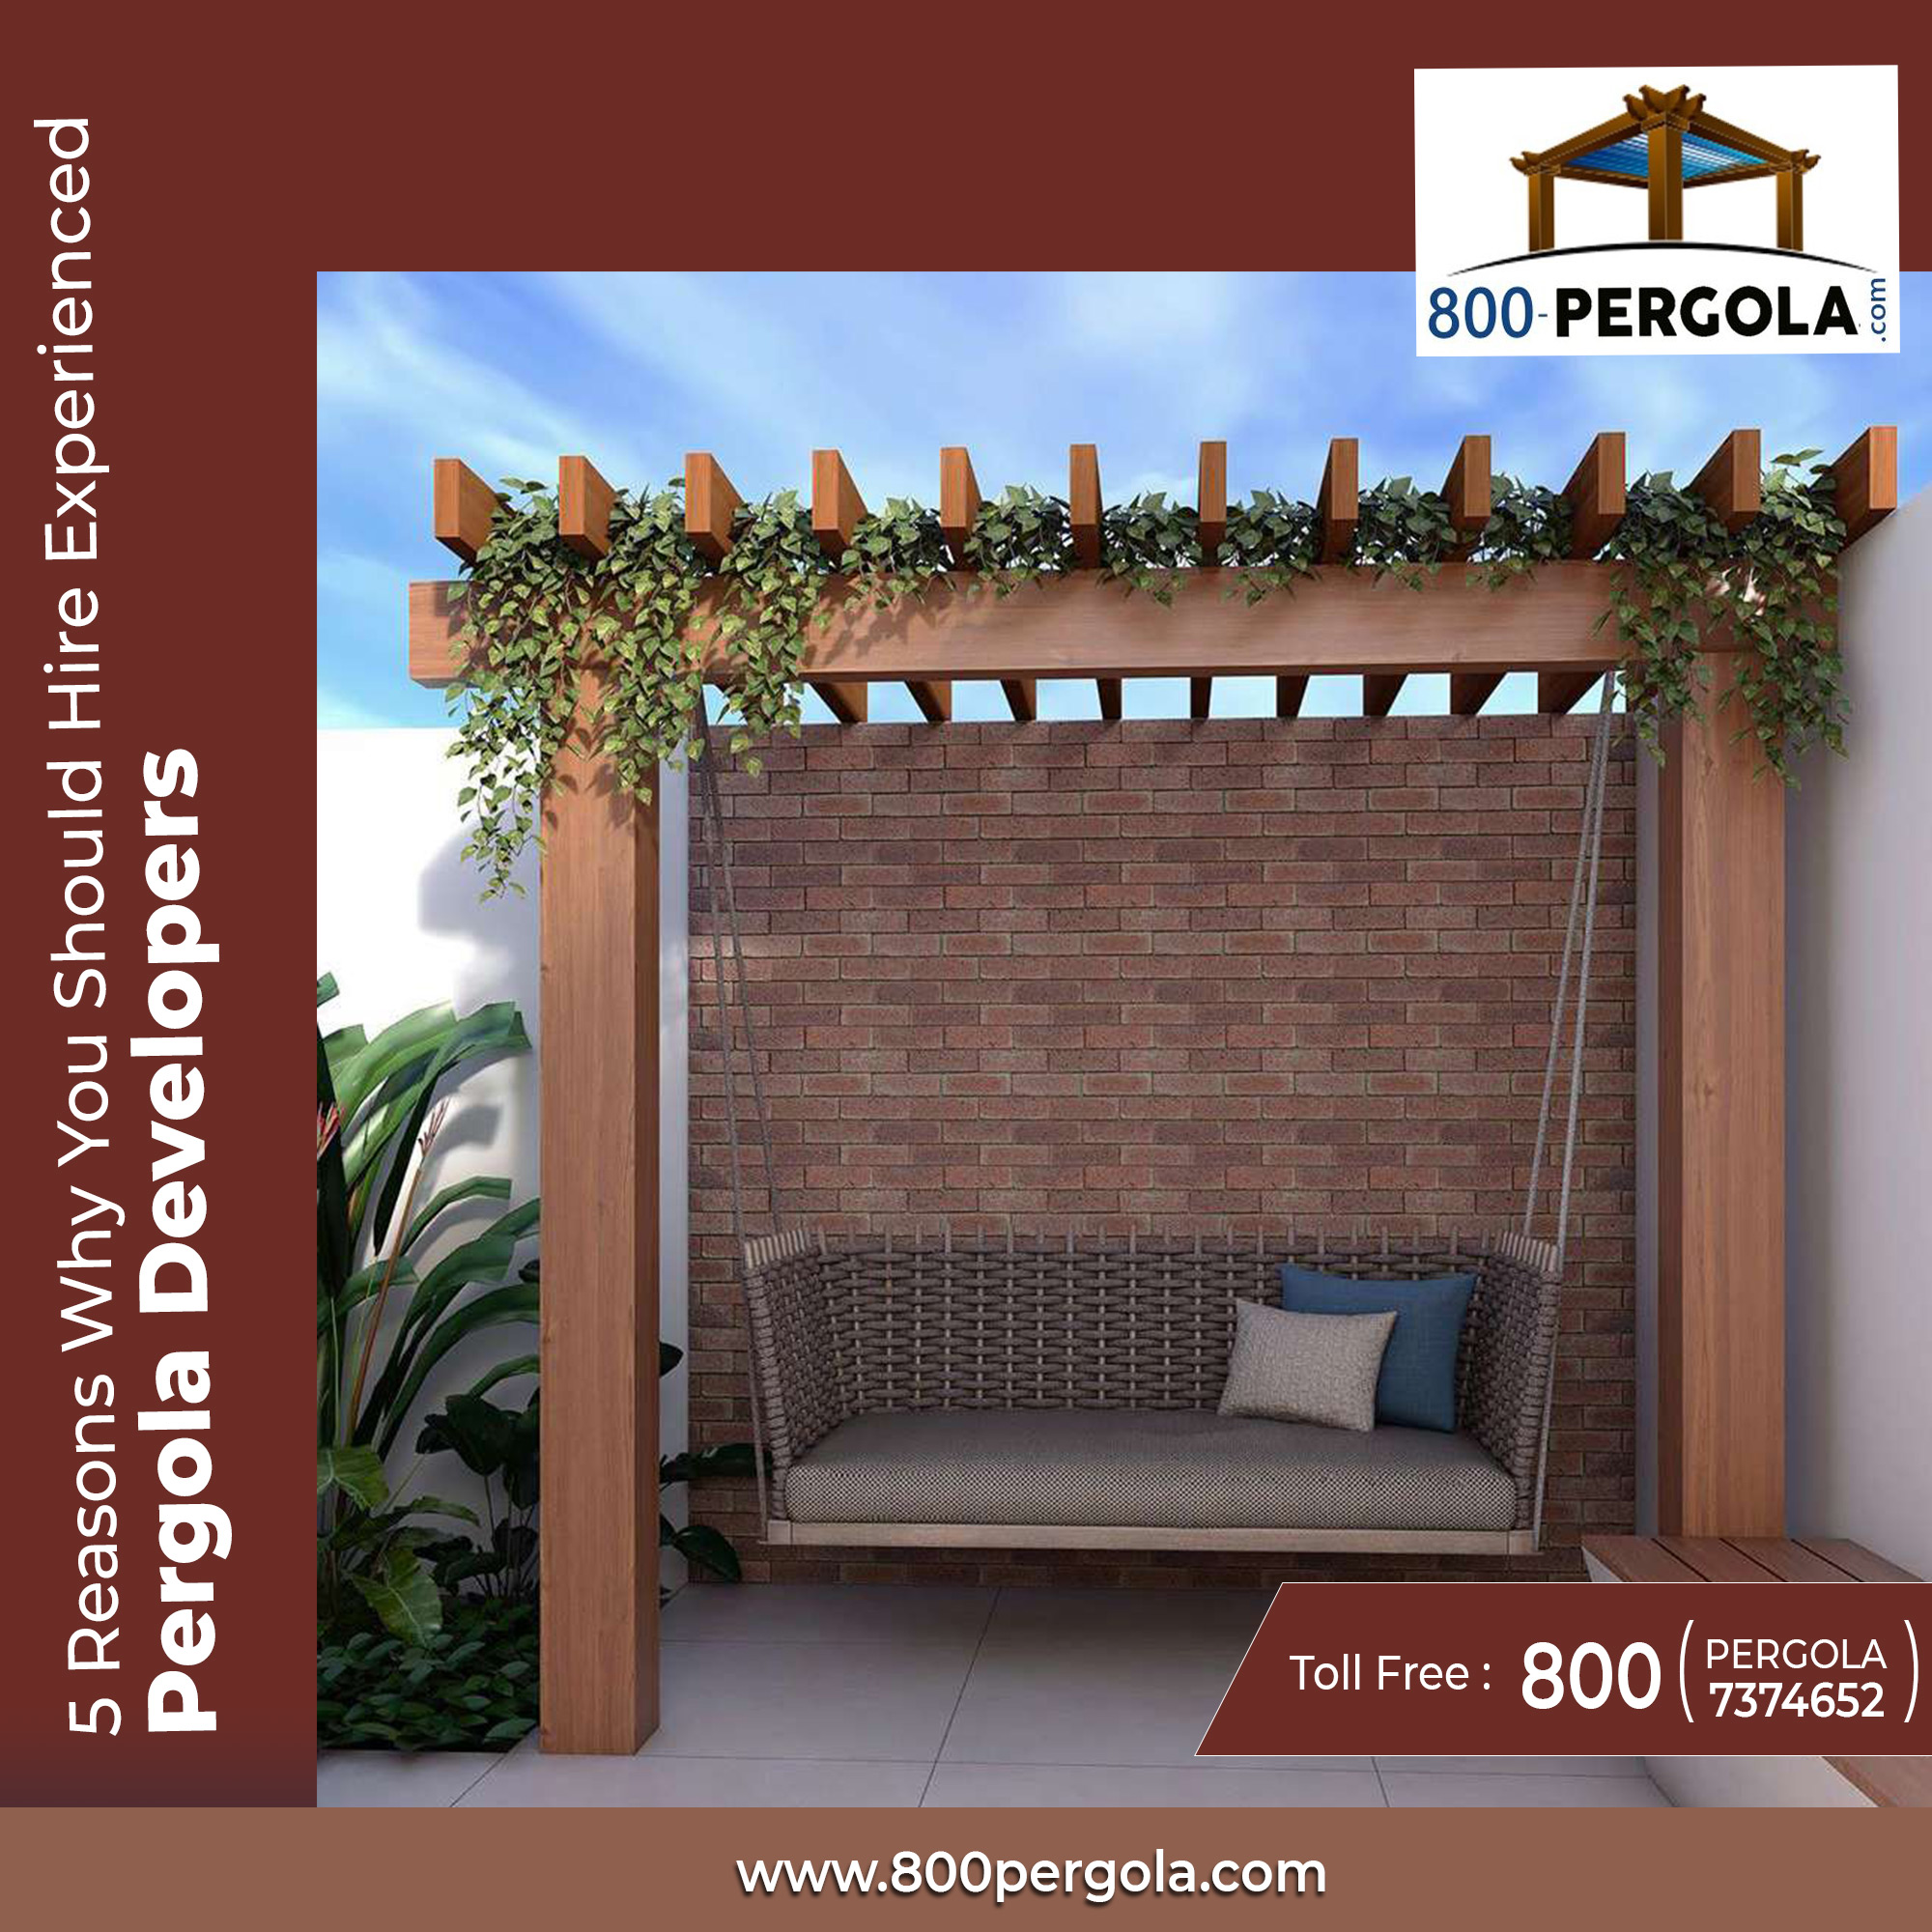 5-Reasons-Why-You-Should-Hire-Experienced-Pergola-Developers